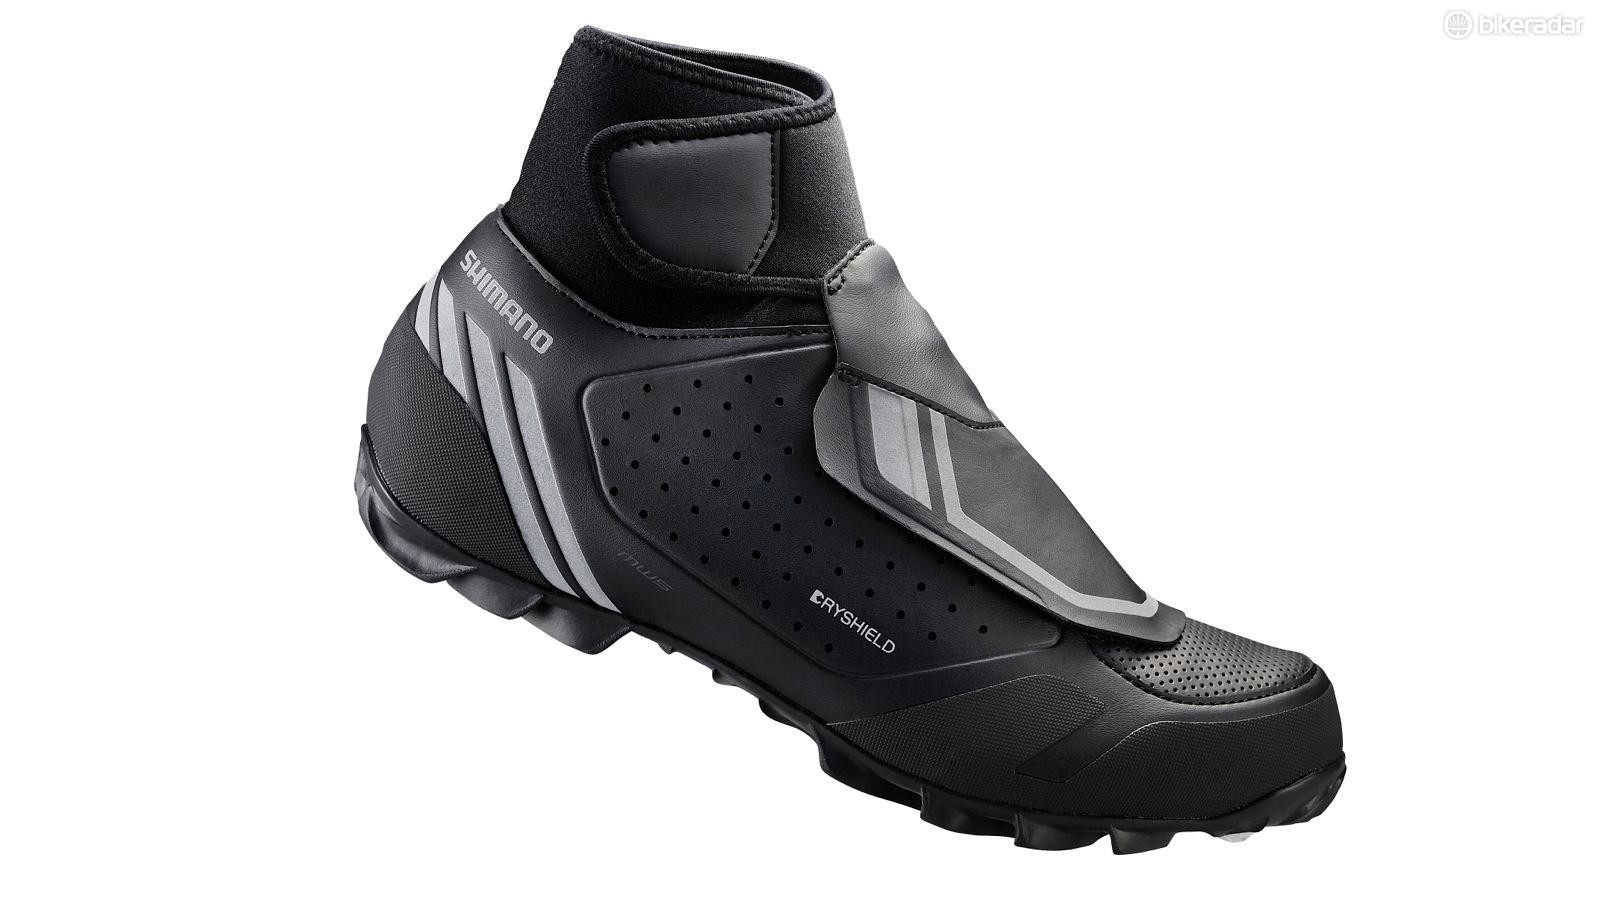 Here's the trail winter shoe, the MW5